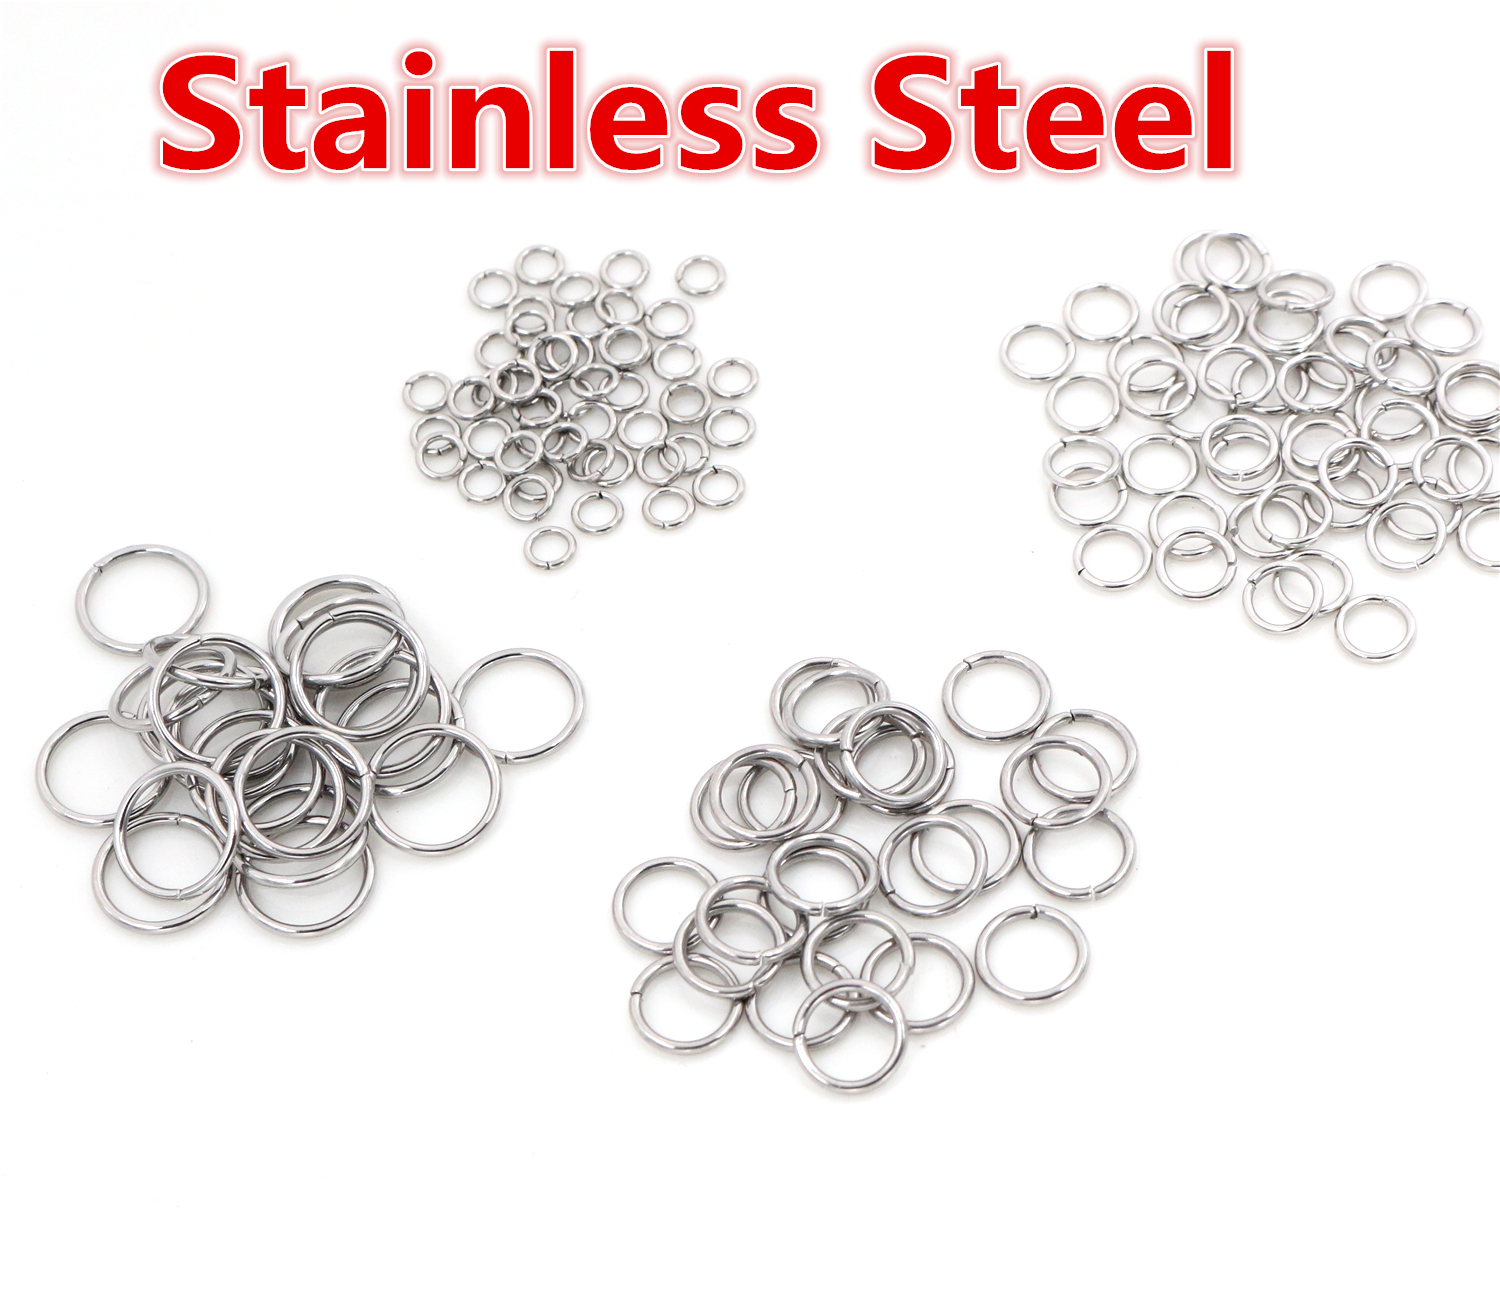 200pcs/Lot 3/4/5/6/7/8/10mm Stainless Steel DIY Jewelry Findings Open Single Loops Jump Rings & Split Ring for jewelry making 200pcs lot 2sa950 y 2sa950 a950 to 92 transistors